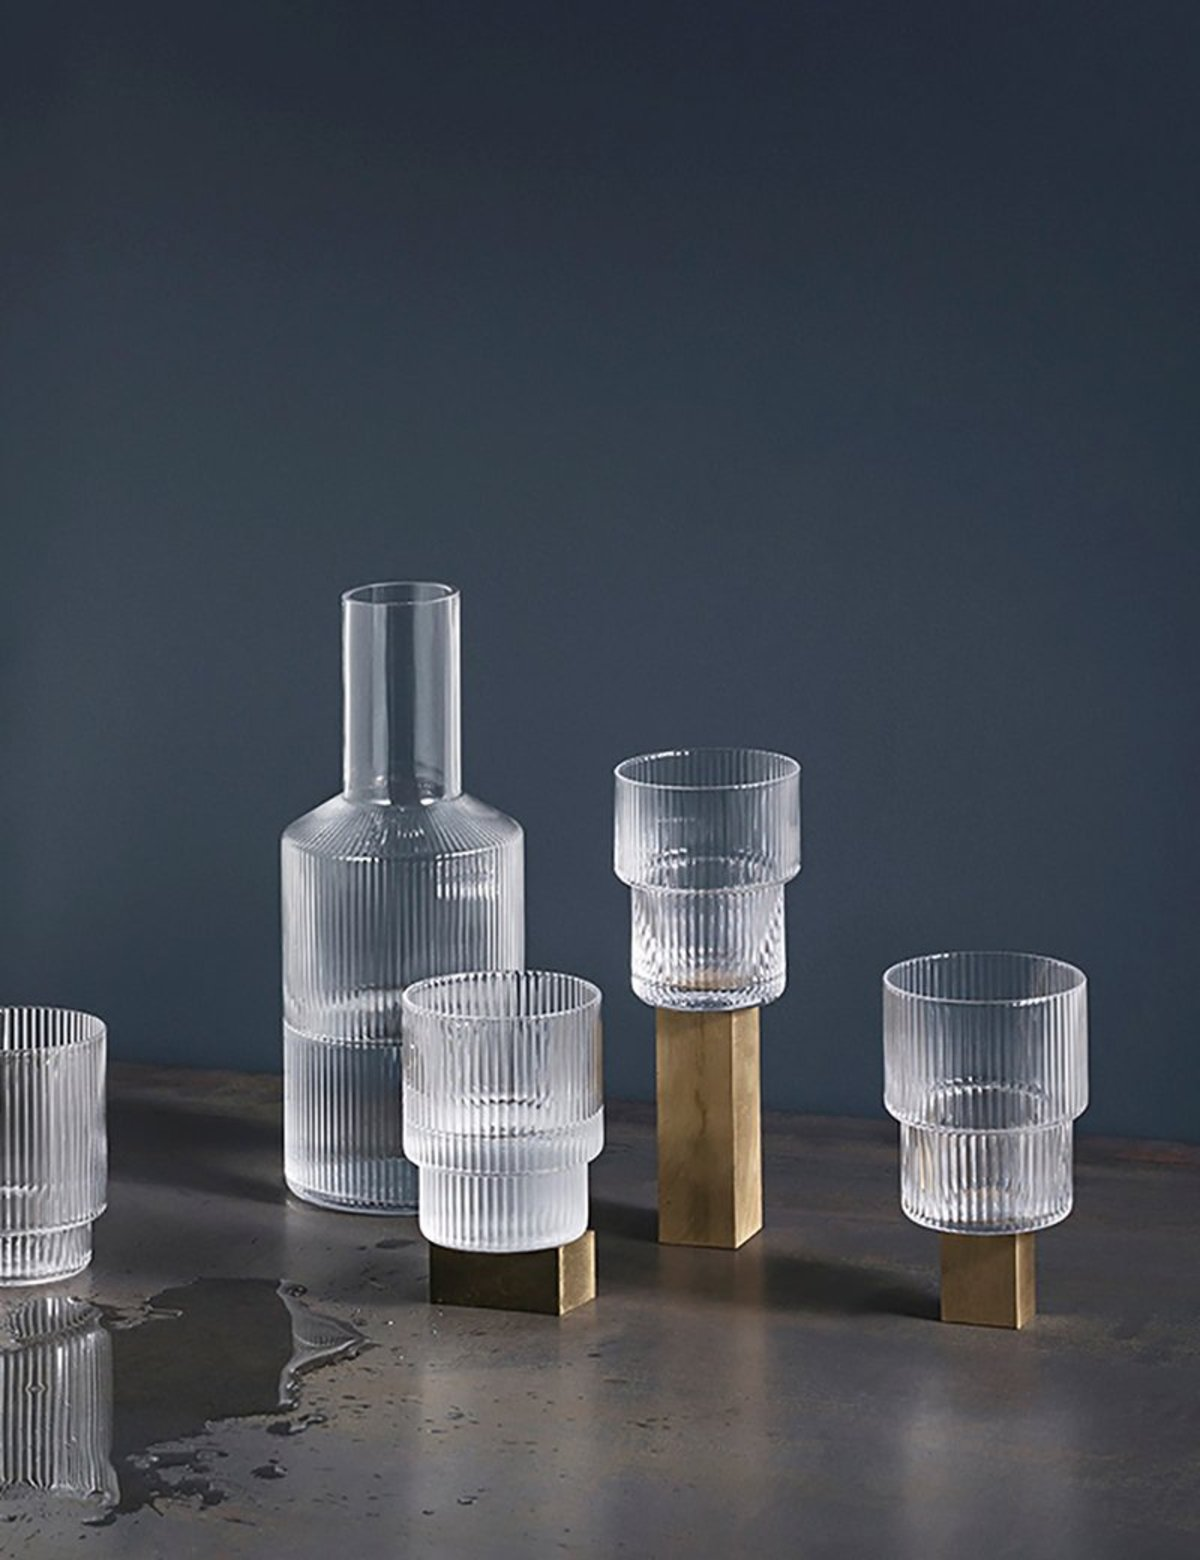 A Carafe That Is A Blind Glass ferm living ripple glass carafe - clear on garmentory